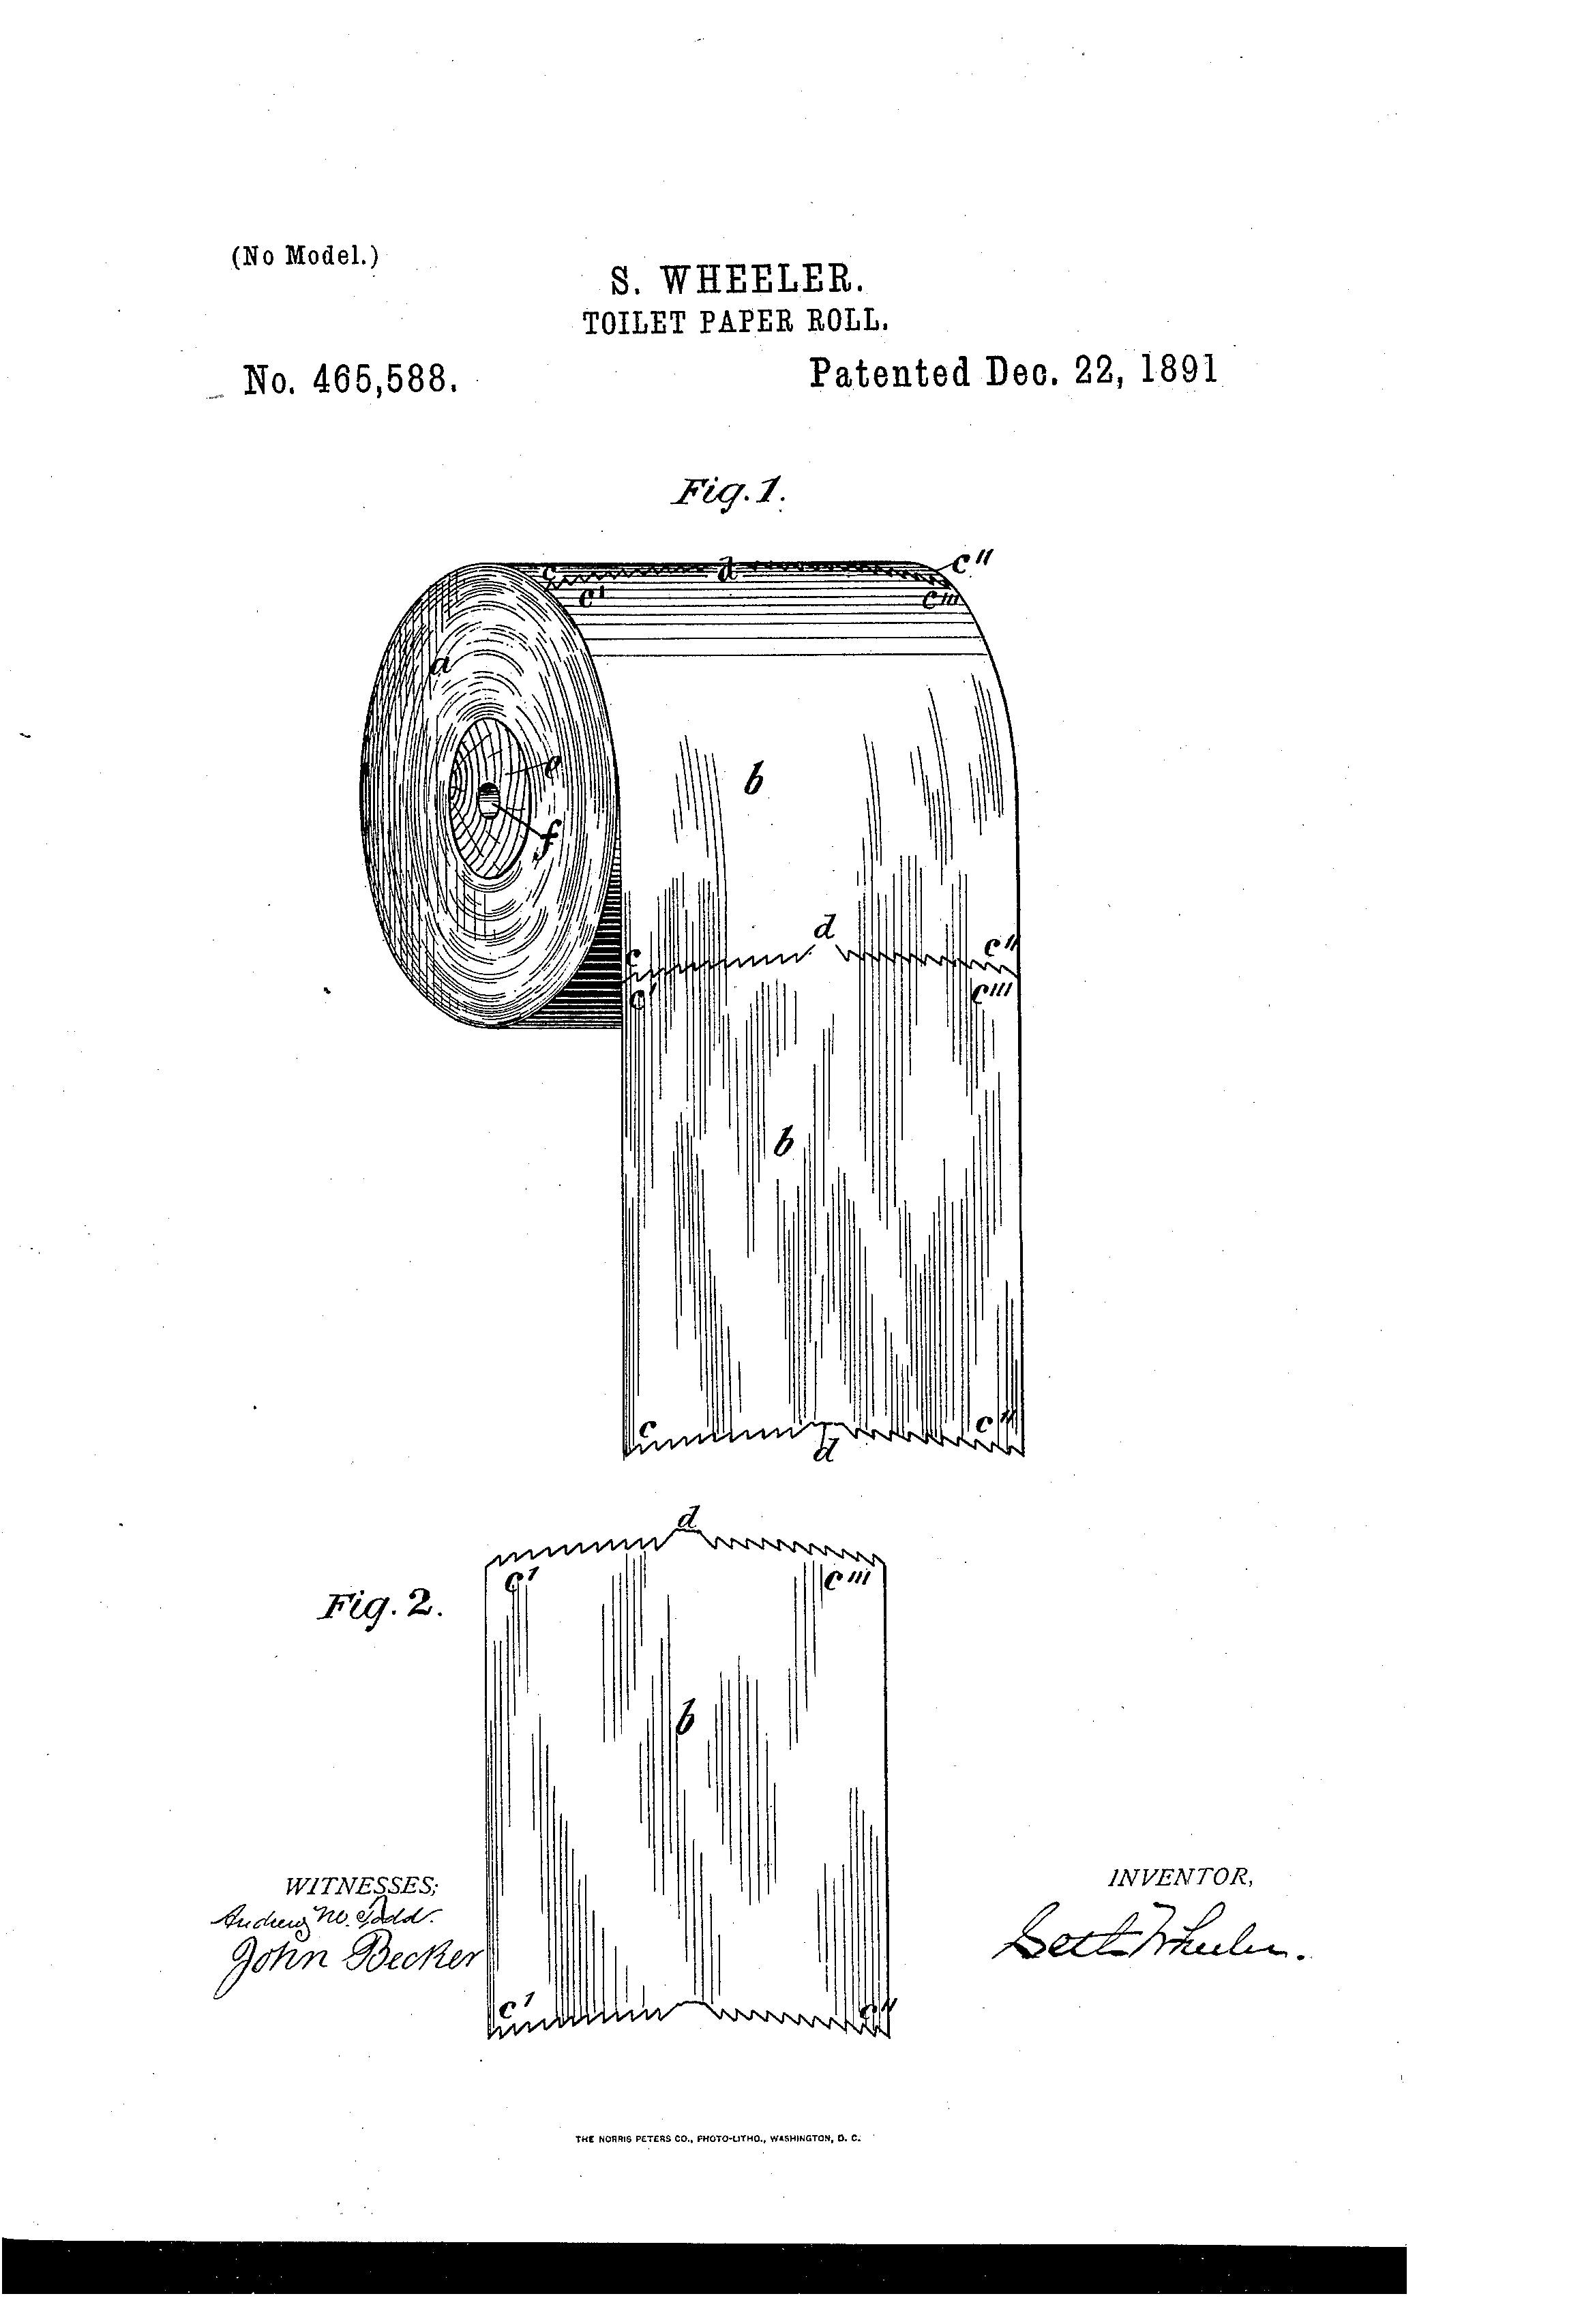 Student essay: Patents